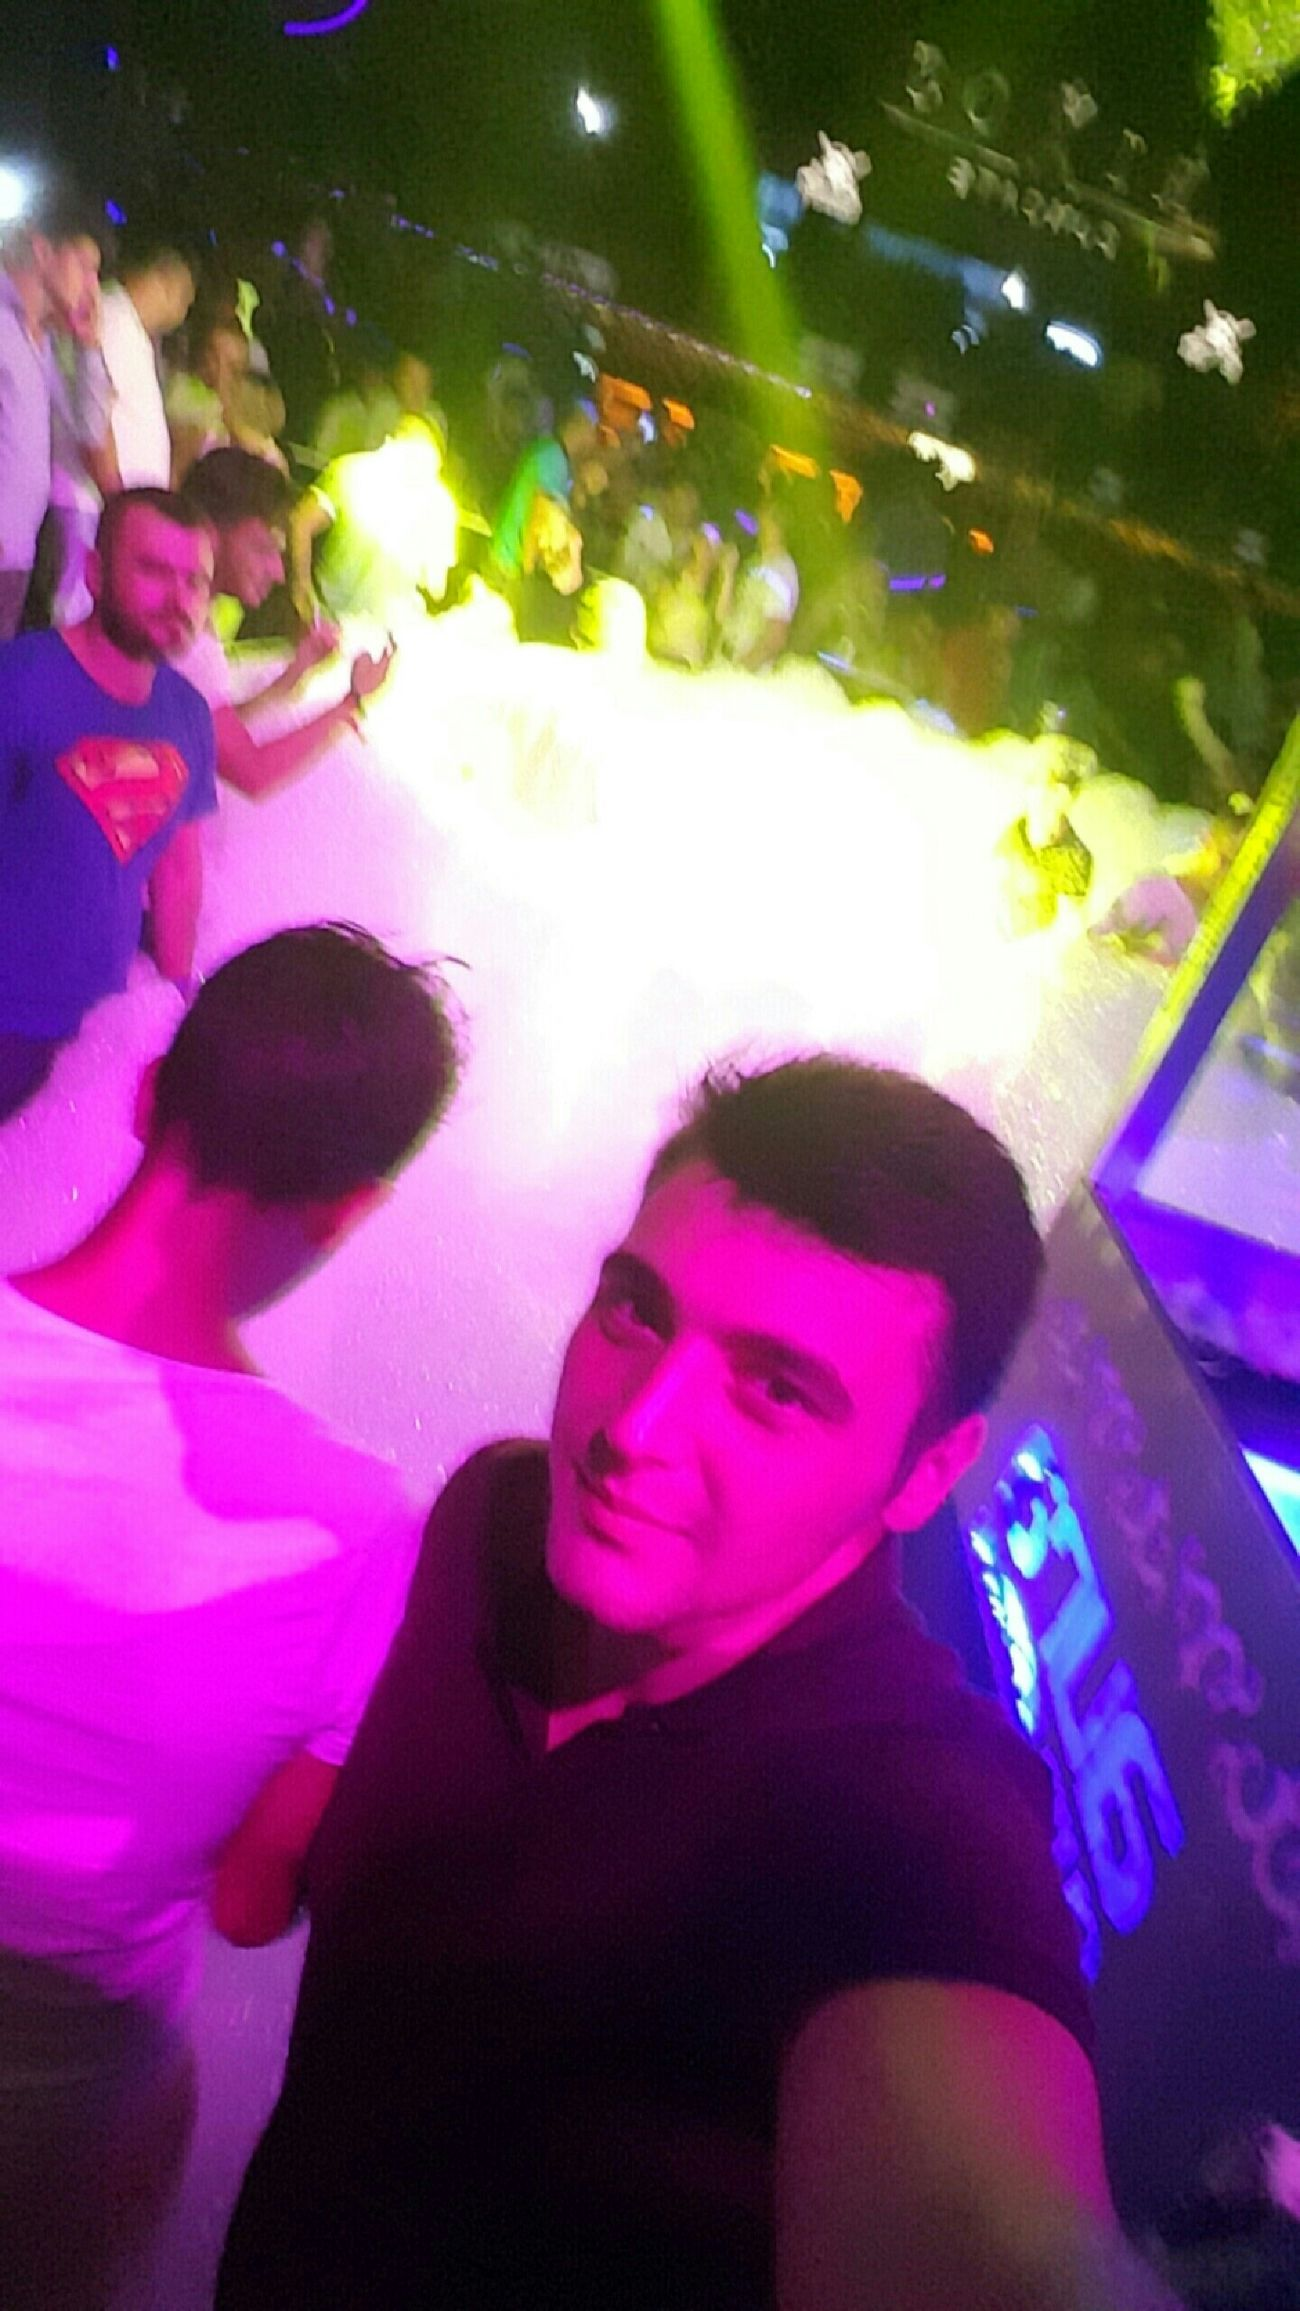 Aura Club Kemer ☠✌ Antalya Kemer Kopuk Party Fun Smile Cool Lifeisgood Summer Great Relax Man Funny Drawing Nightlife Foamparty Colorfull Drunk Scene Club Happiness Forever Holiday Good Day Self